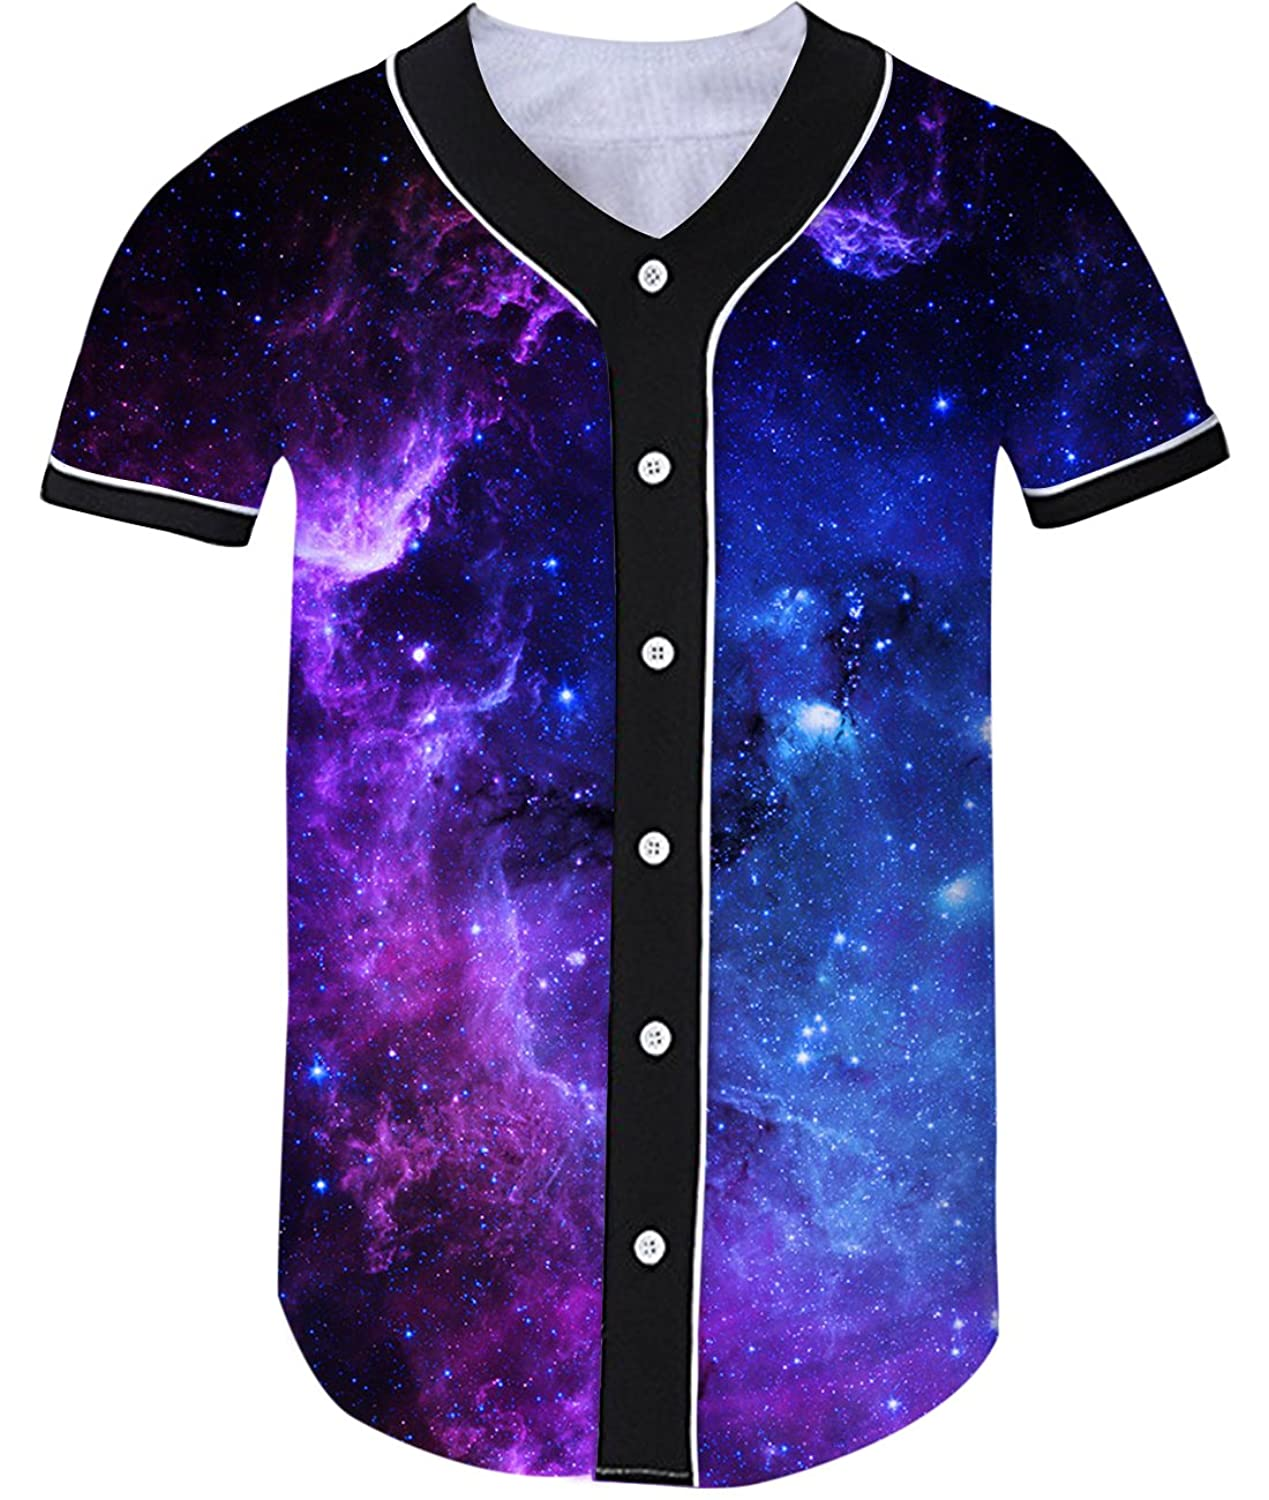 Uideazone SHIRT ガールズ B074Z9MC43Galaxy1 Medium